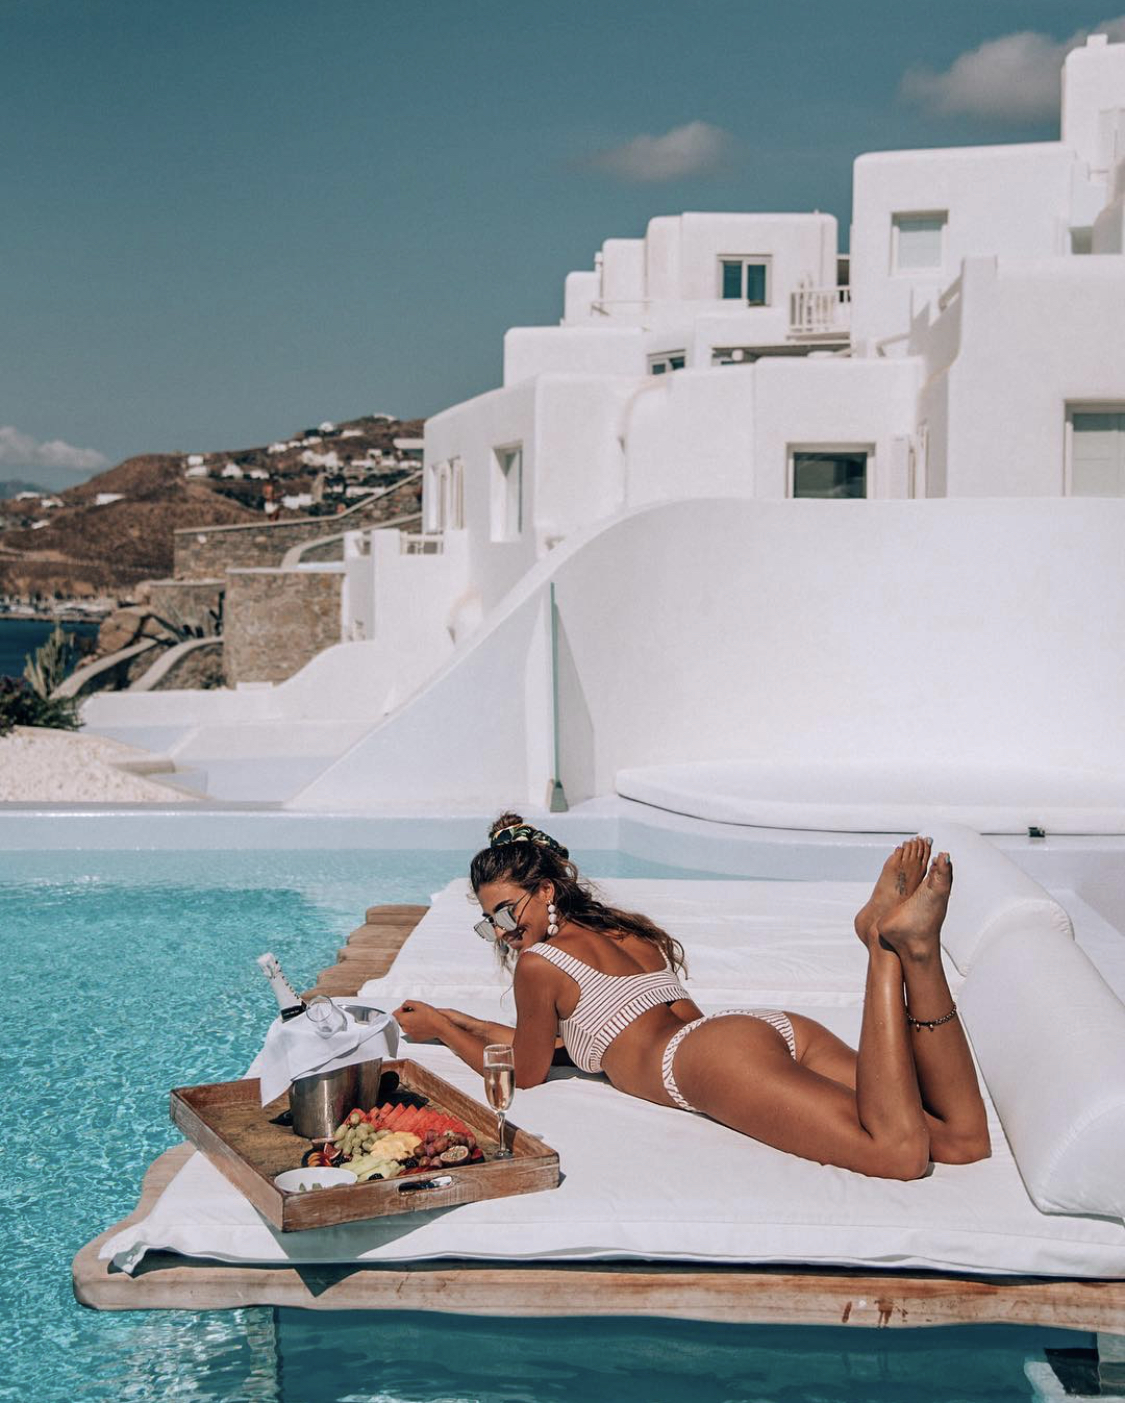 Lisa Homsy in Greece with a pool breakfast